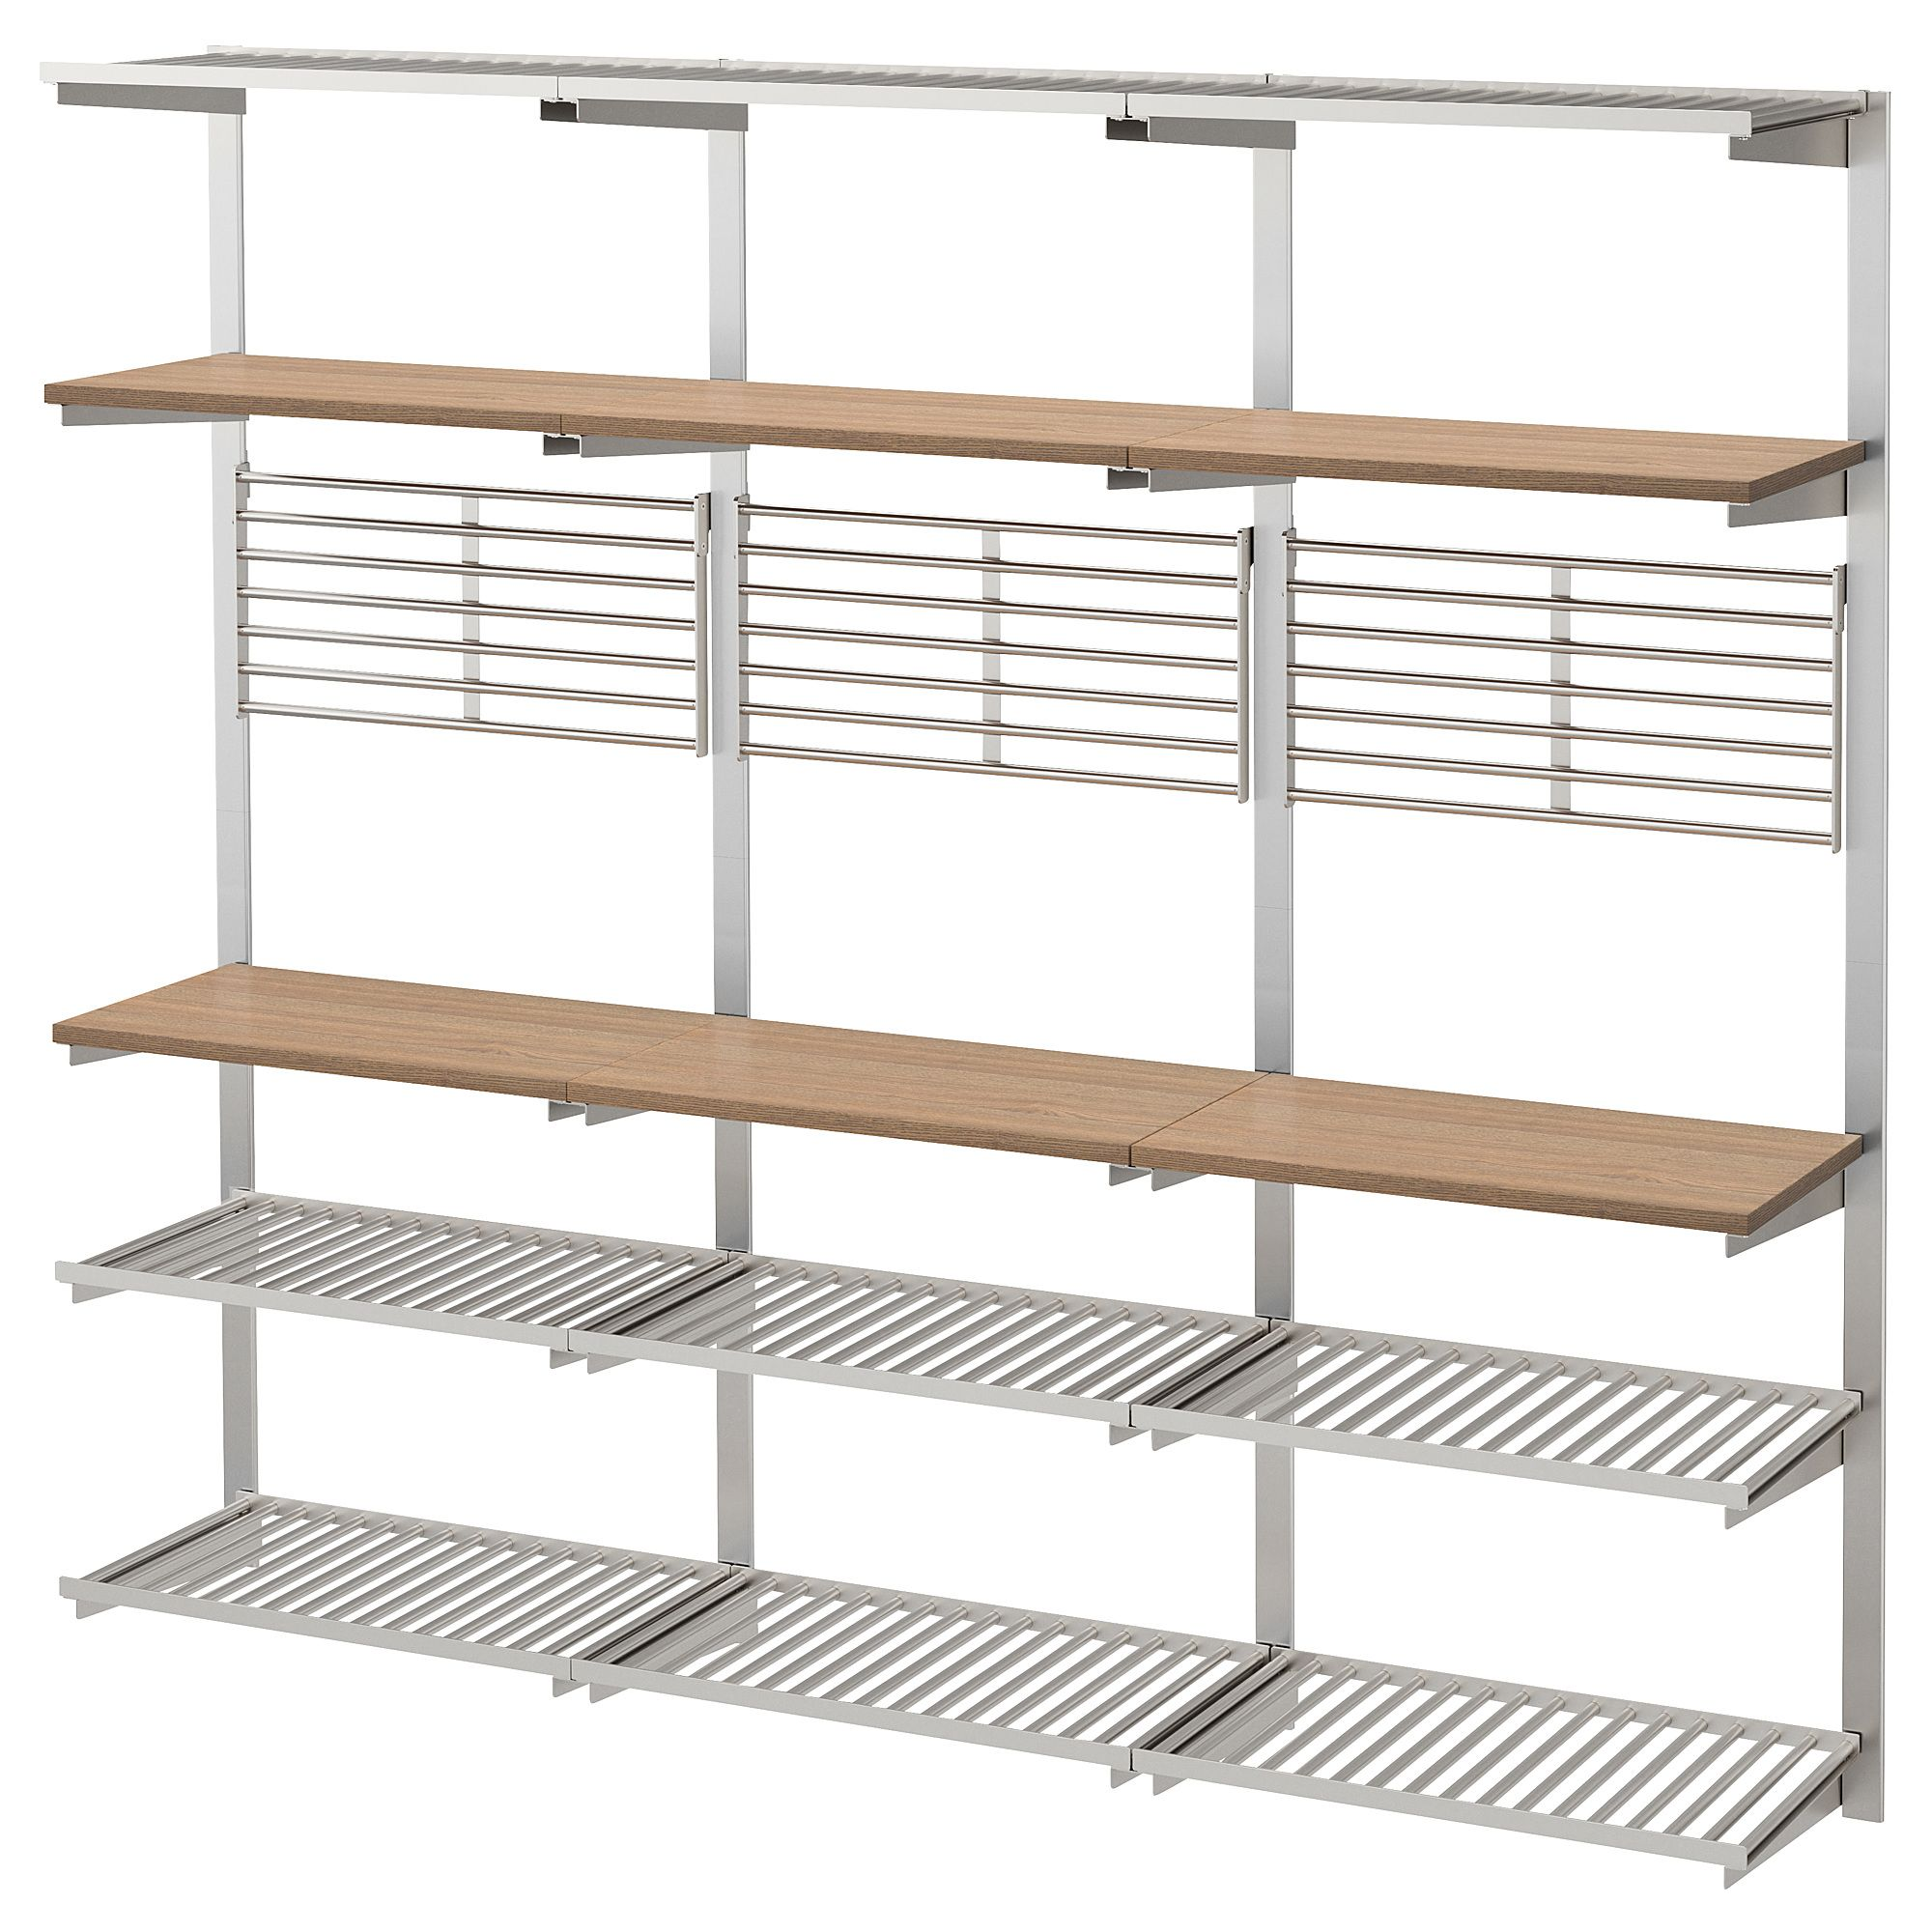 Kungsfors Suspension Rail With Shelf Wll Grid Stainless Steel Ash Find It Here Ikea Shelves Ikea Ikea Wall